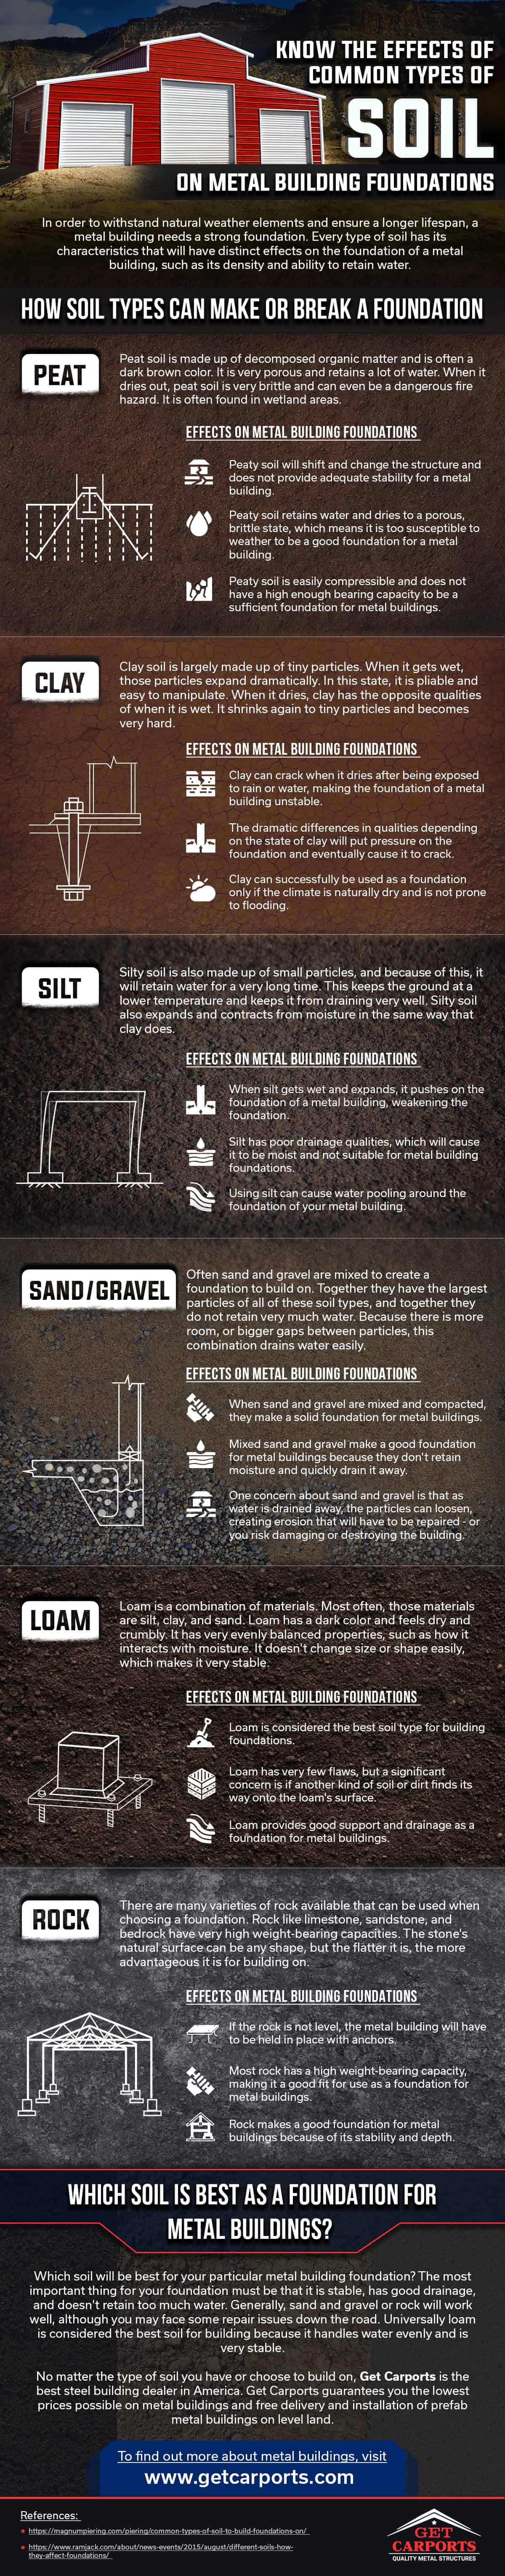 Know the Effects of Common Types of Soil On Metal Building Foundations